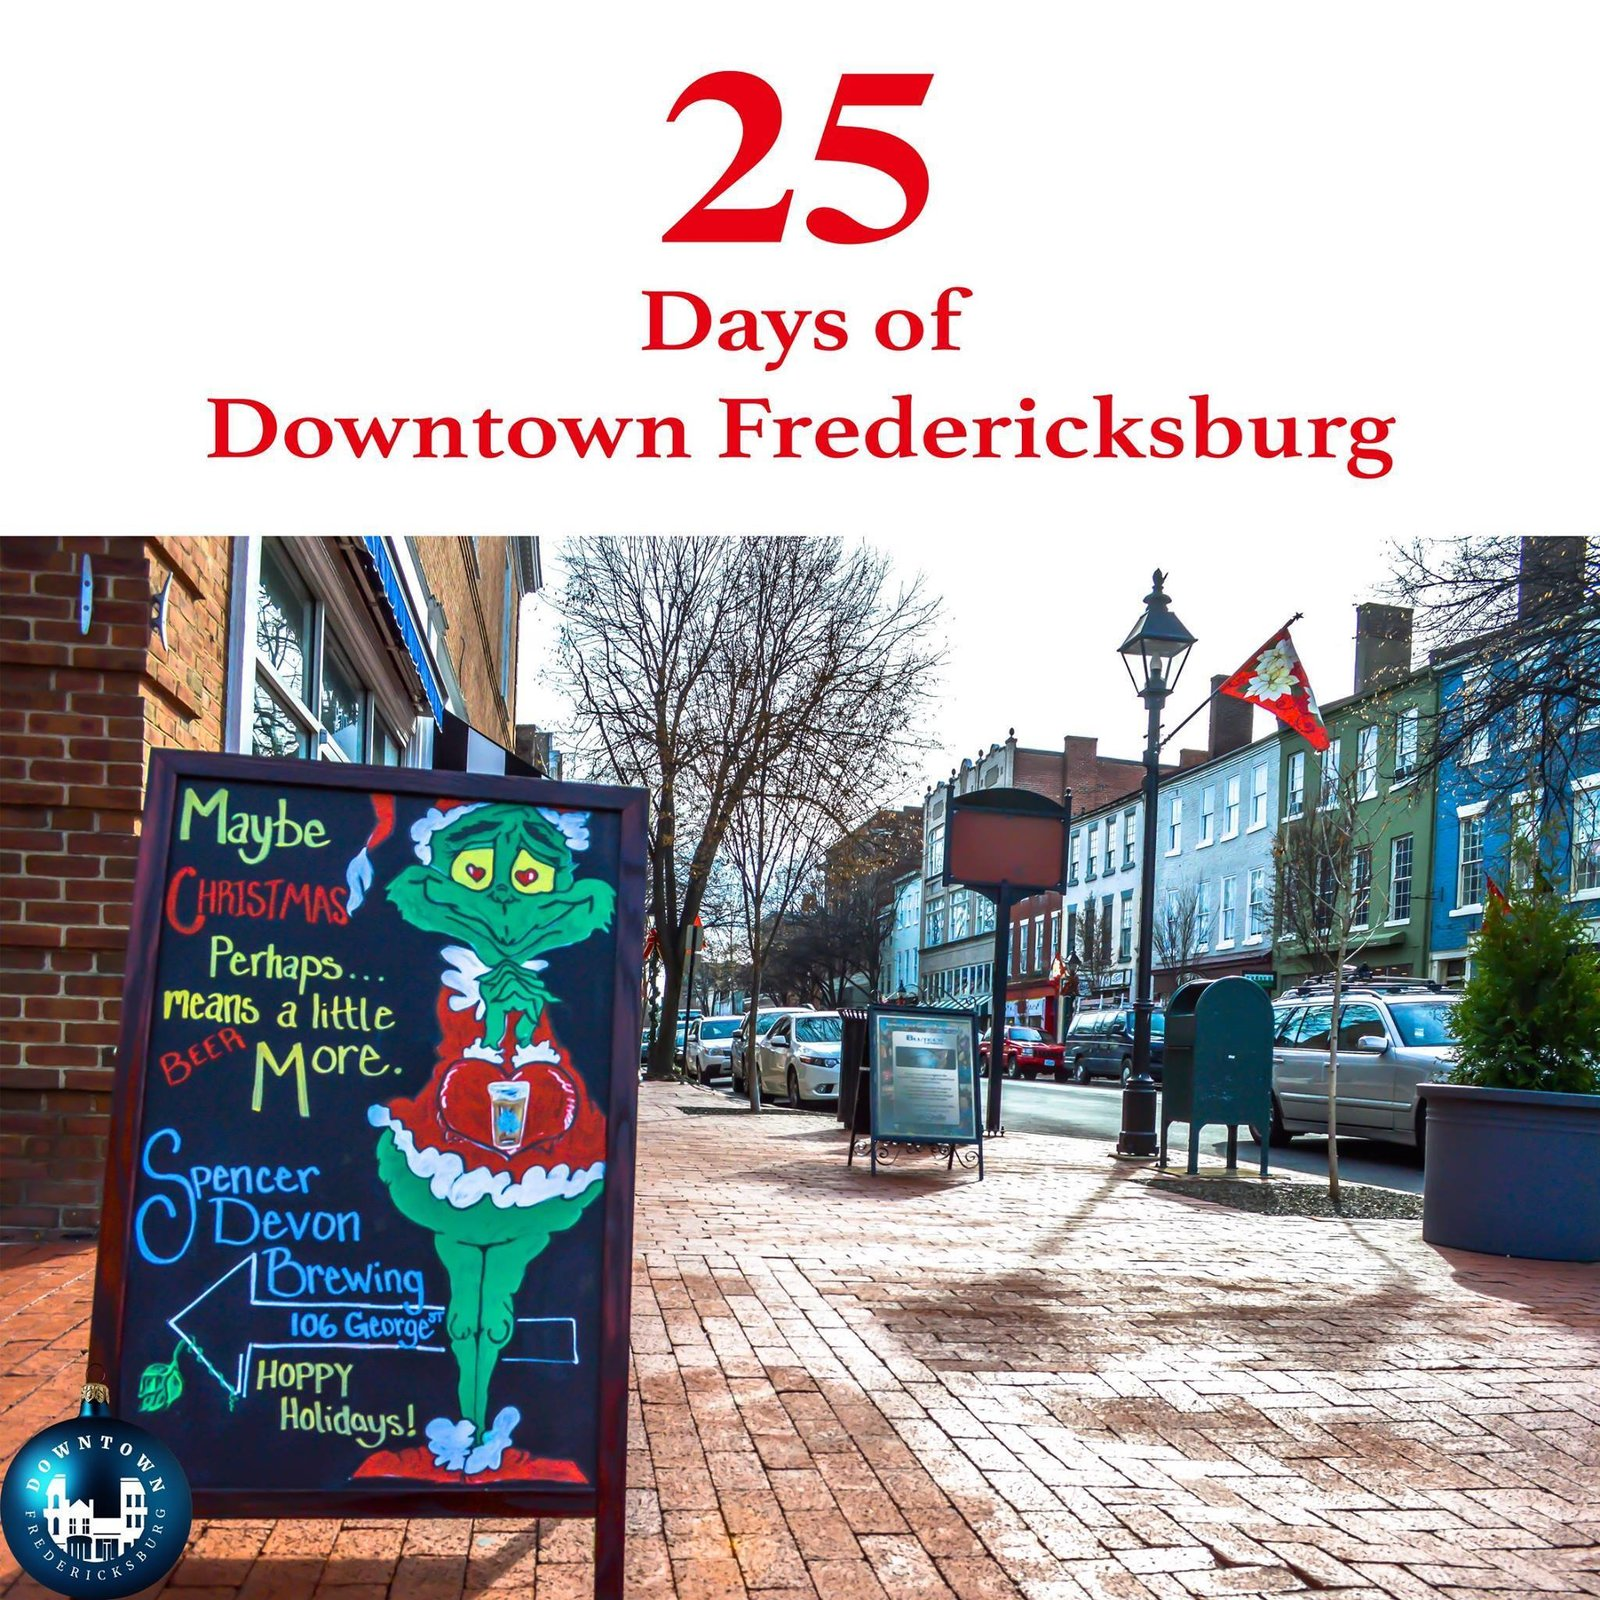 Gift Twenty-three And what happened then? Well, in Downtown Fredericksburg they say, that the Grinch's heart grew with a family trip to Spencer Devon Brewing that day! https://www.facebook.com/DowntownFredericksburg/  25 Days of Downtown Fredericksburg